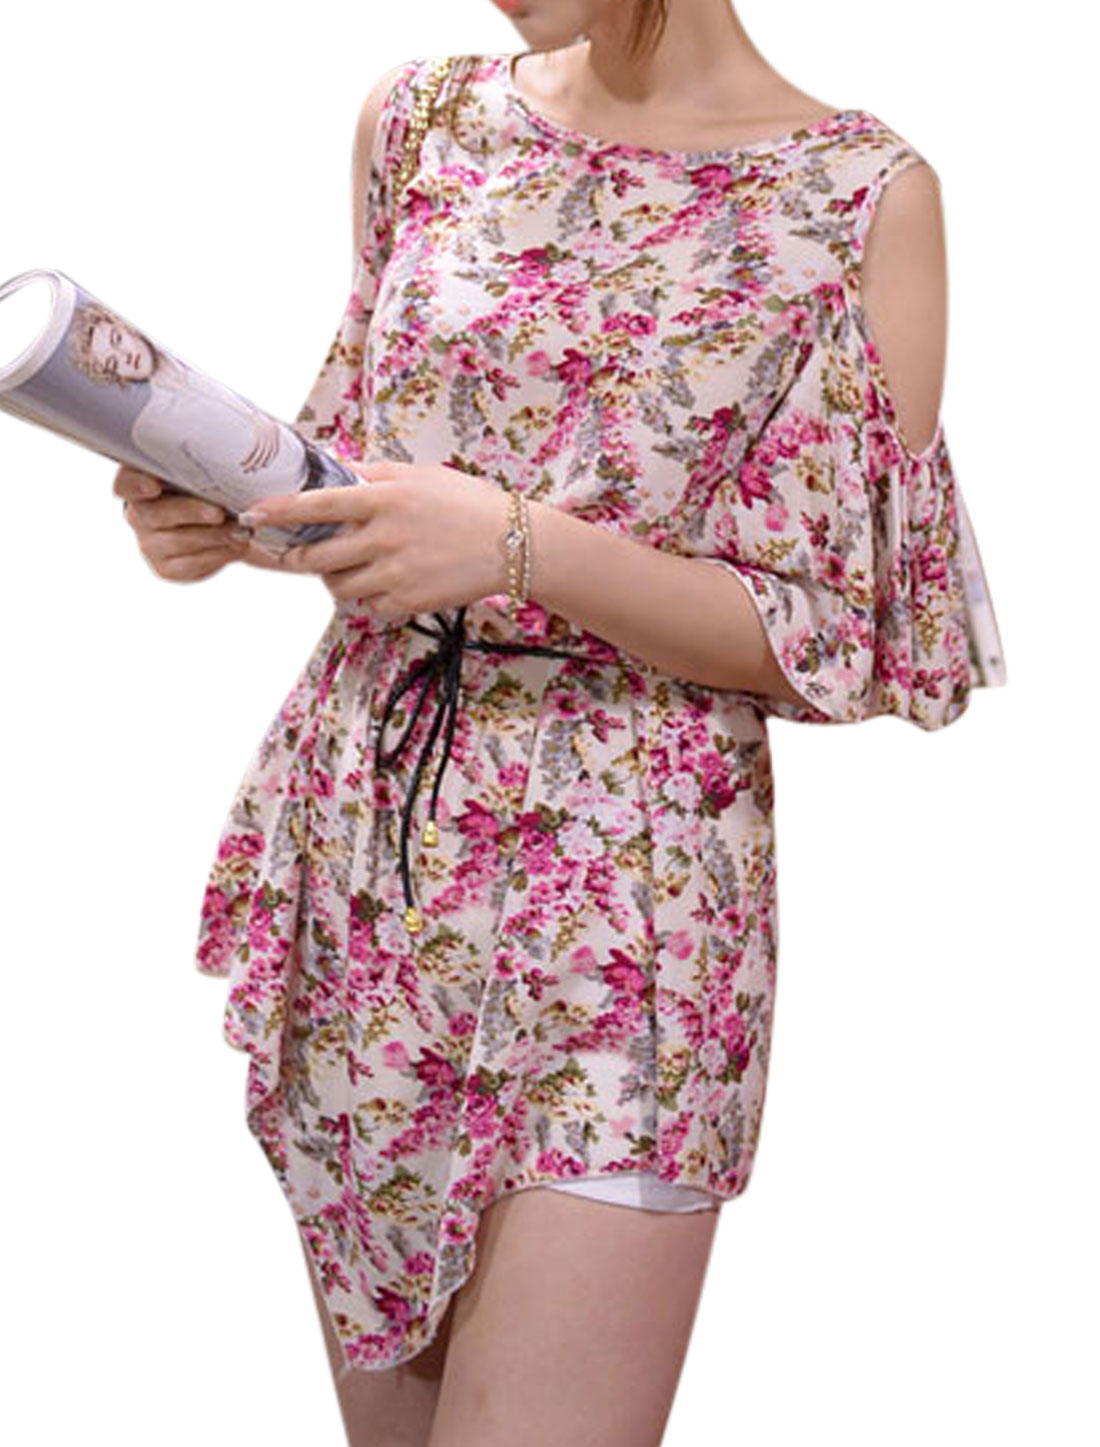 Women Cut Out Shoulder Floral Pattern Tunic Top w Waist String Multicolor S